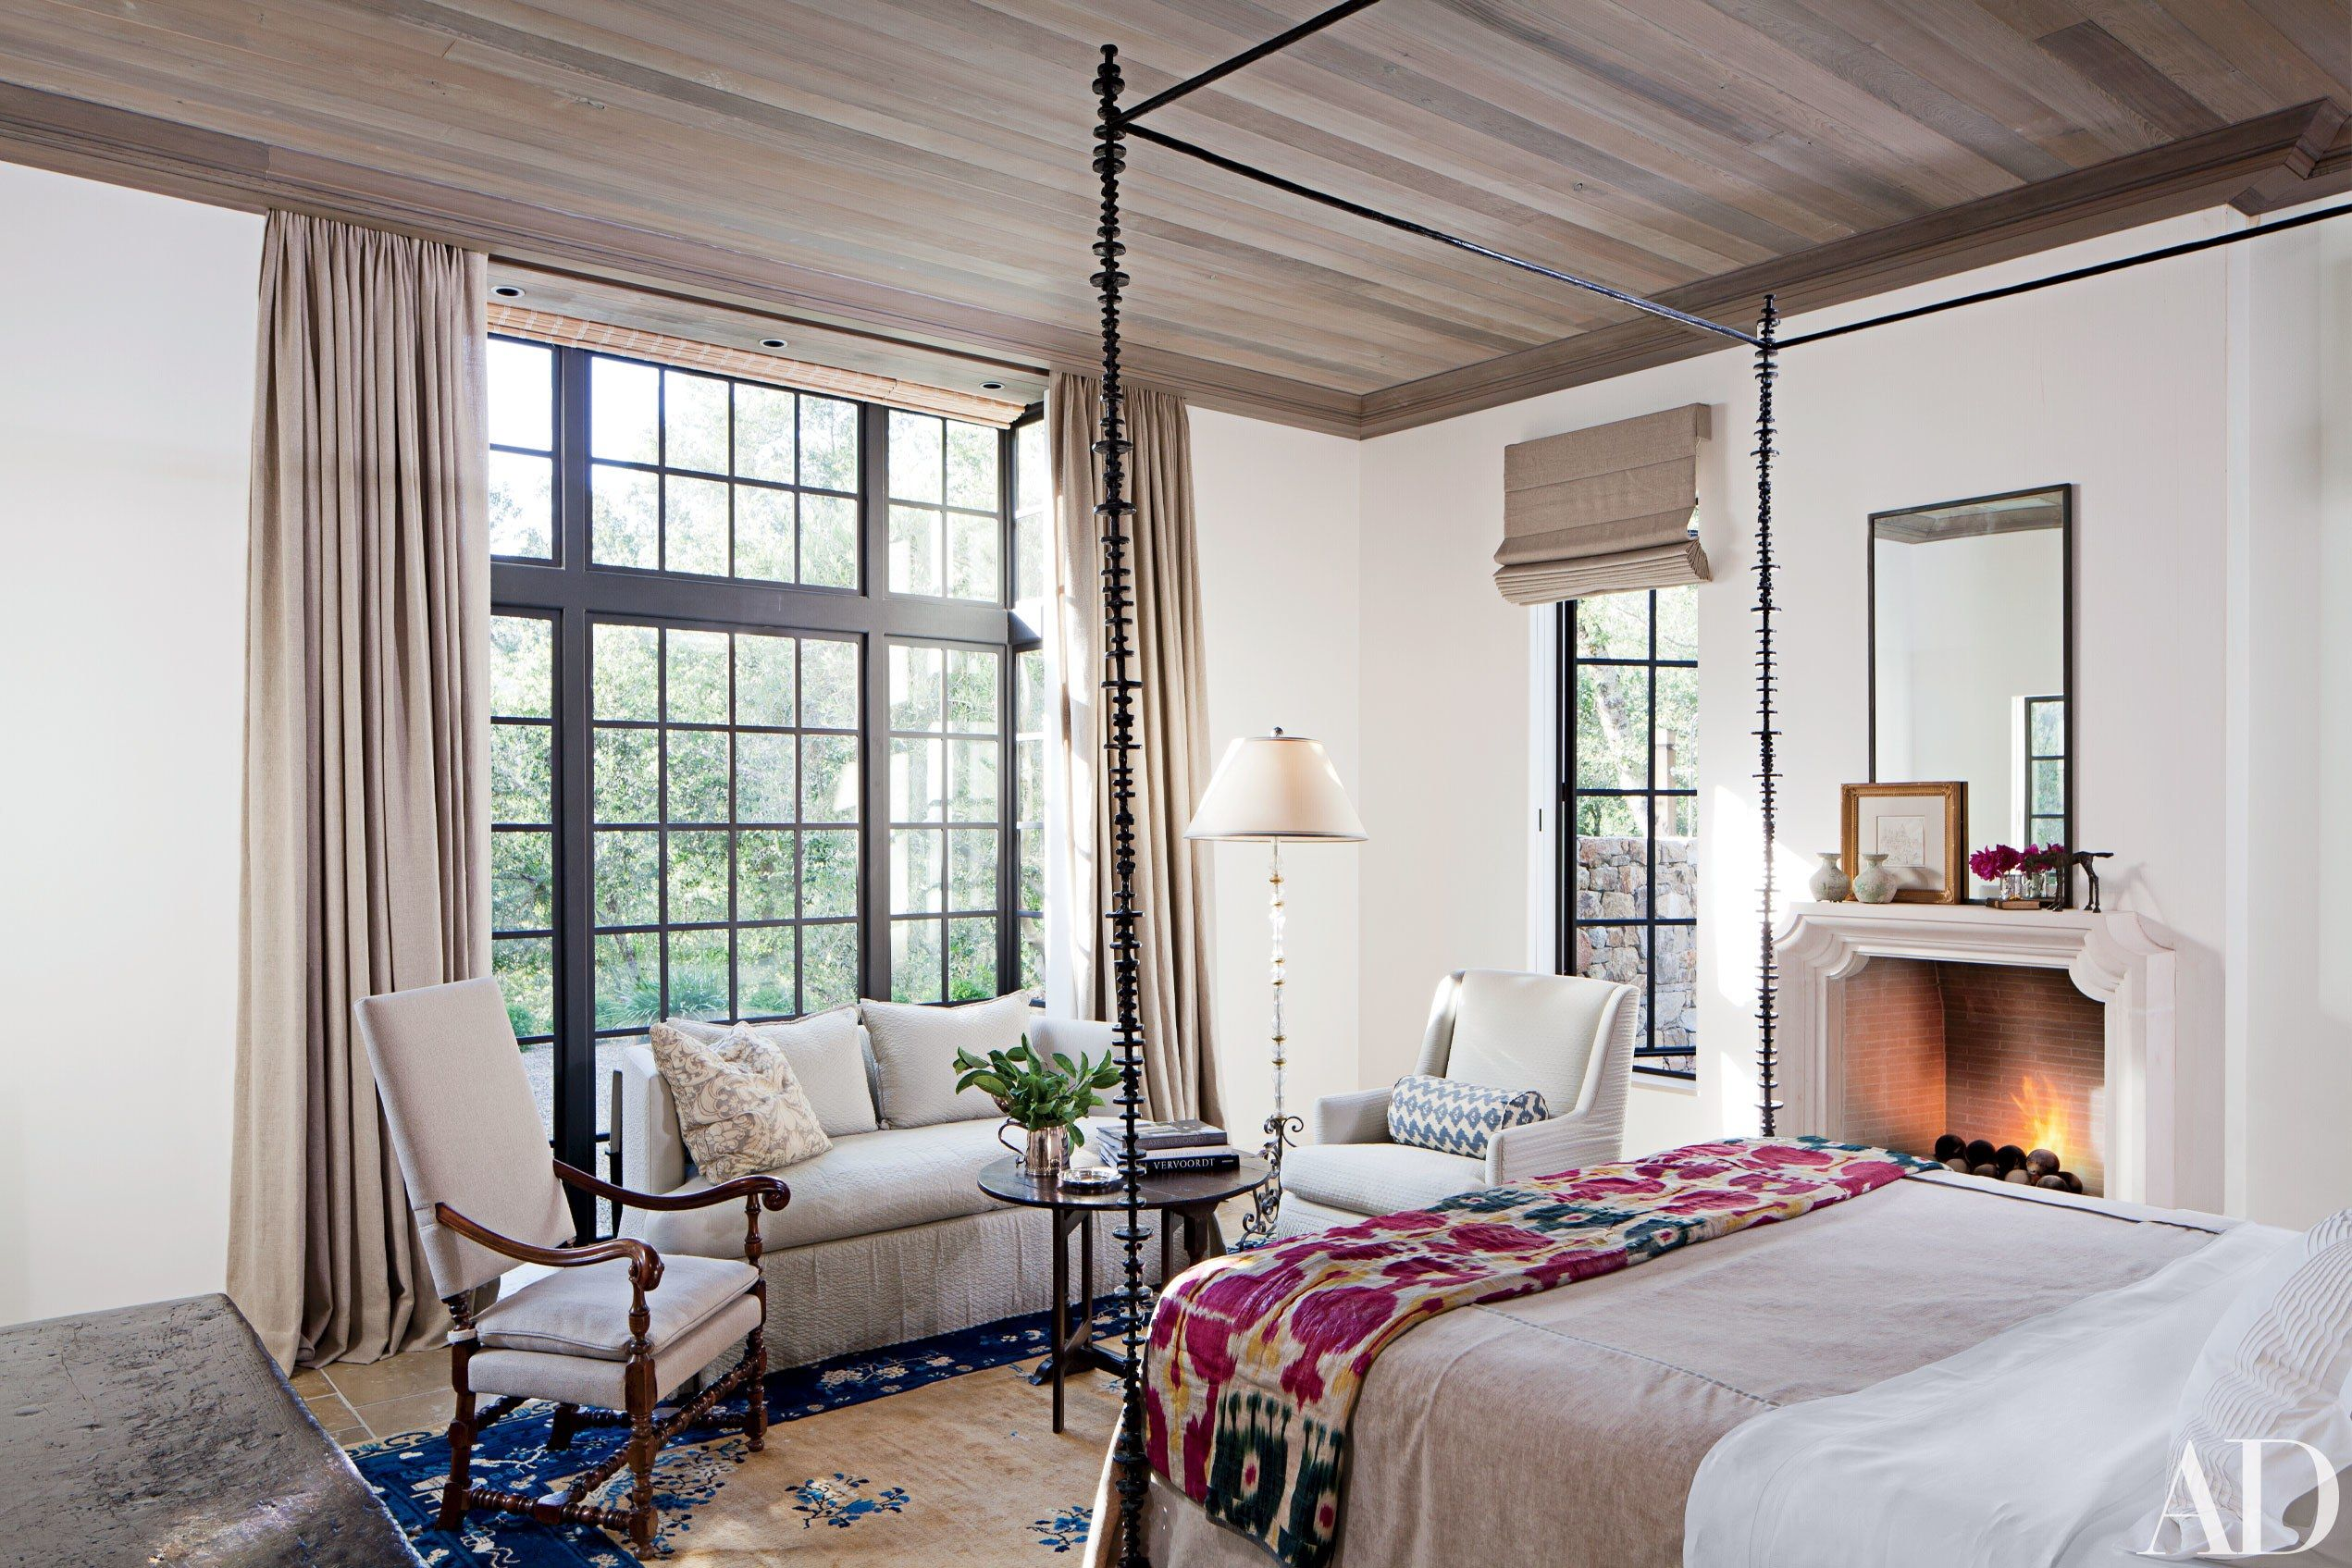 23 Beautiful Bedroom Fireplaces Photos | Architectural Digest